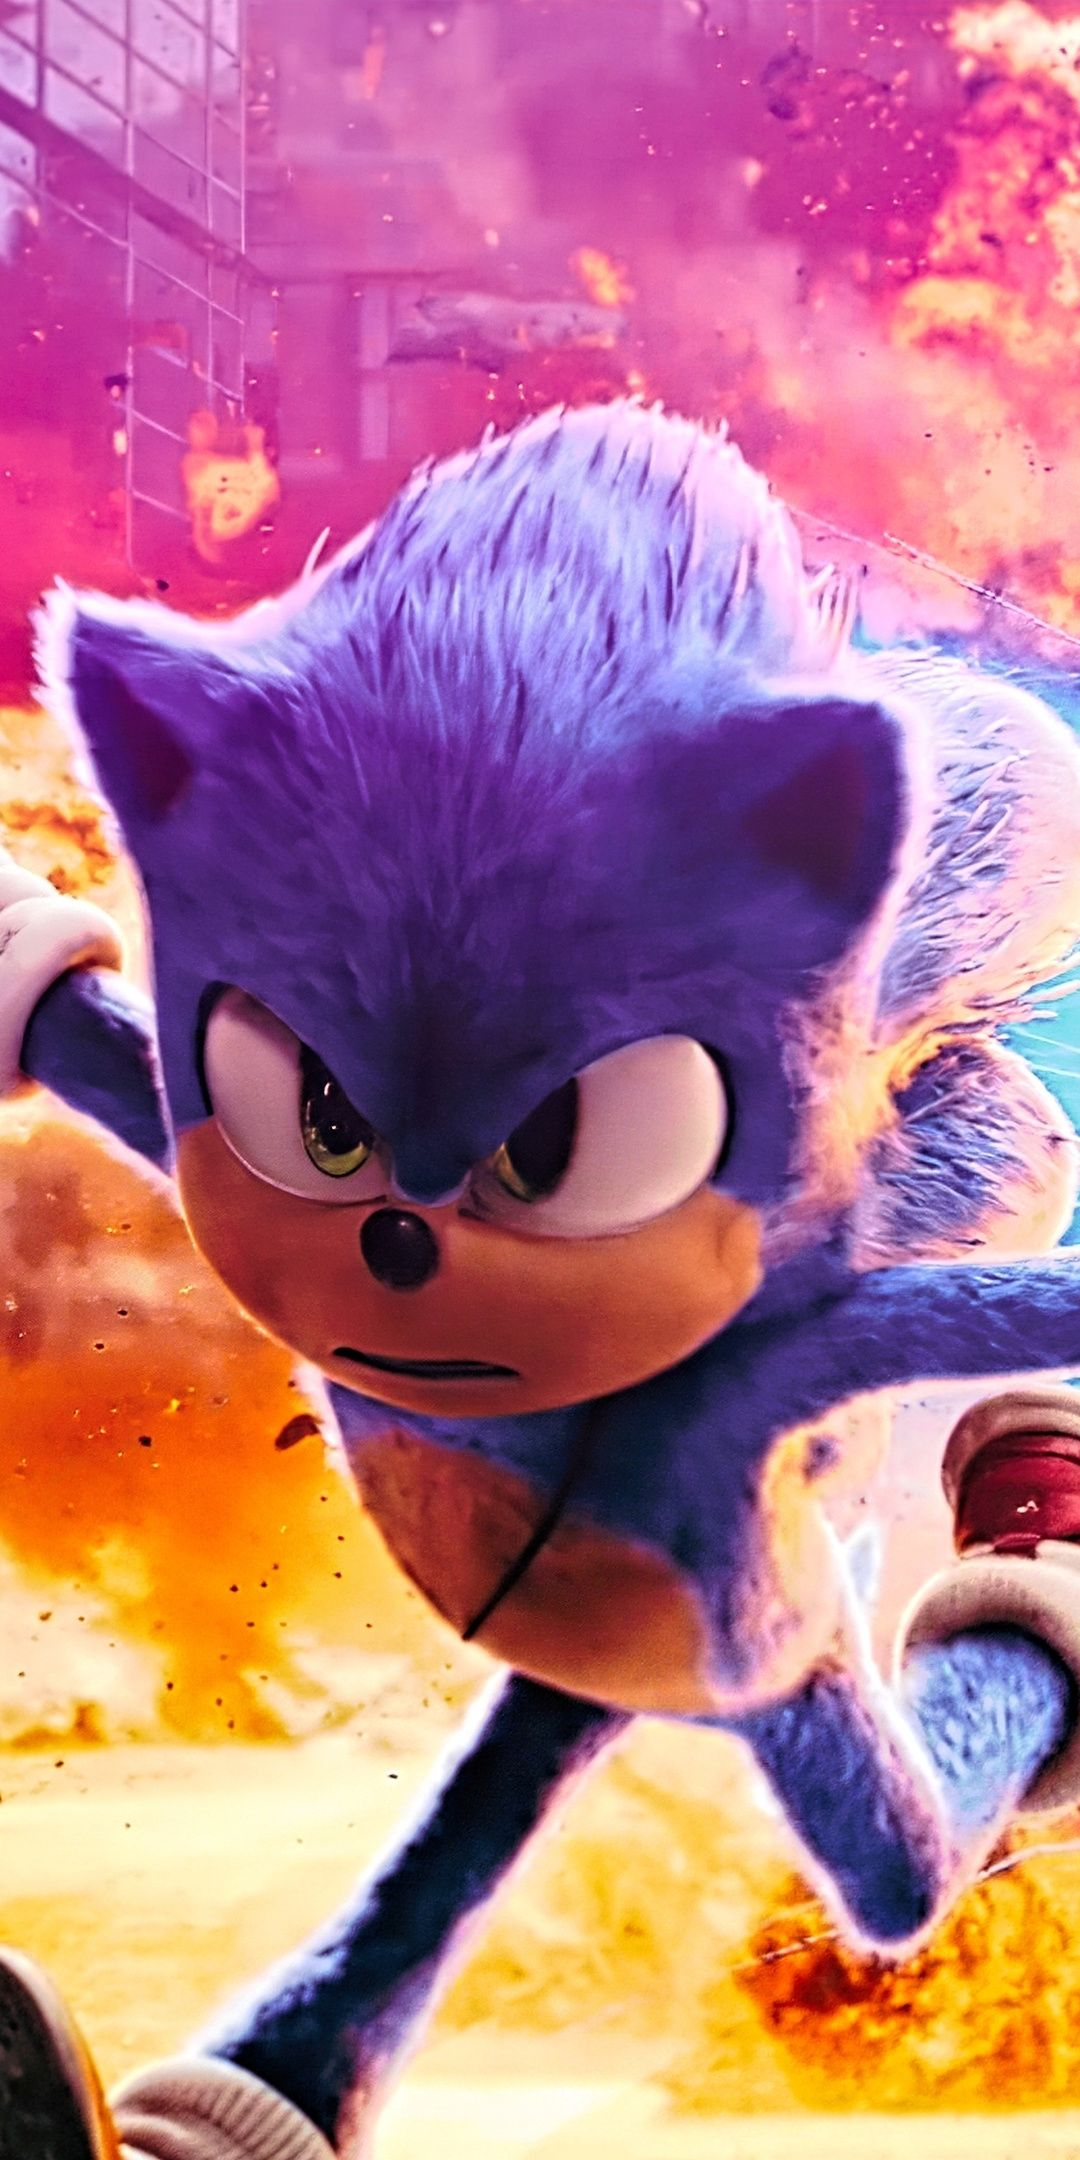 1080x2160 Movie Run Sonic The Hedgehog 2020 Wallpaper In 2020 Sonic The Hedgehog Sonic Stunning Wallpapers